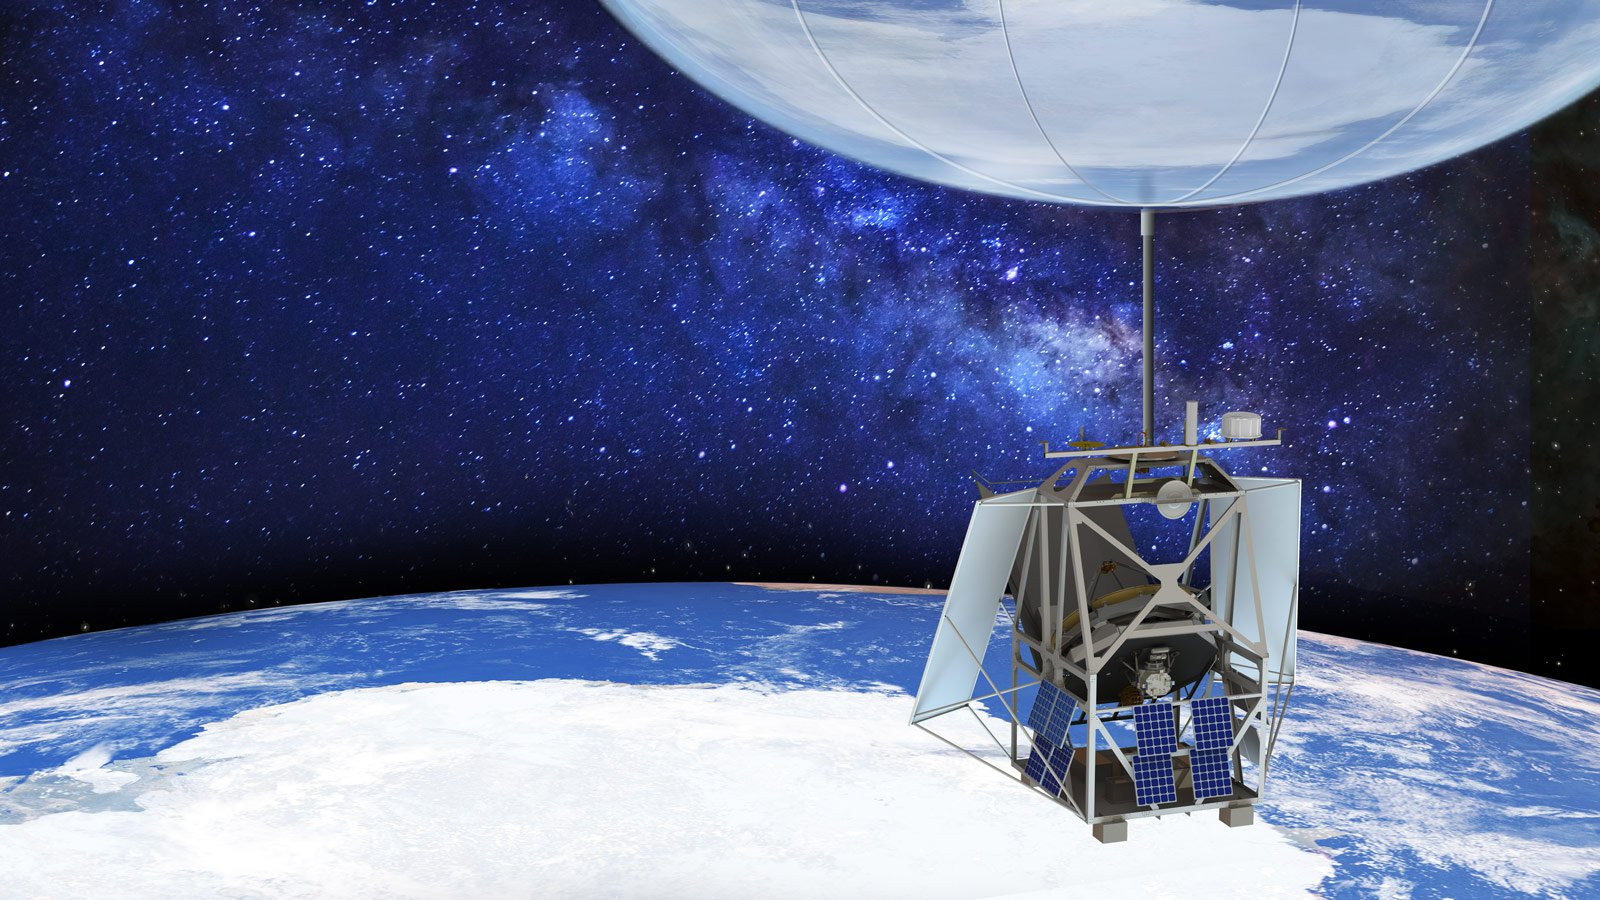 NASA Mission Will Study the Cosmos With a Stratospheric Balloon